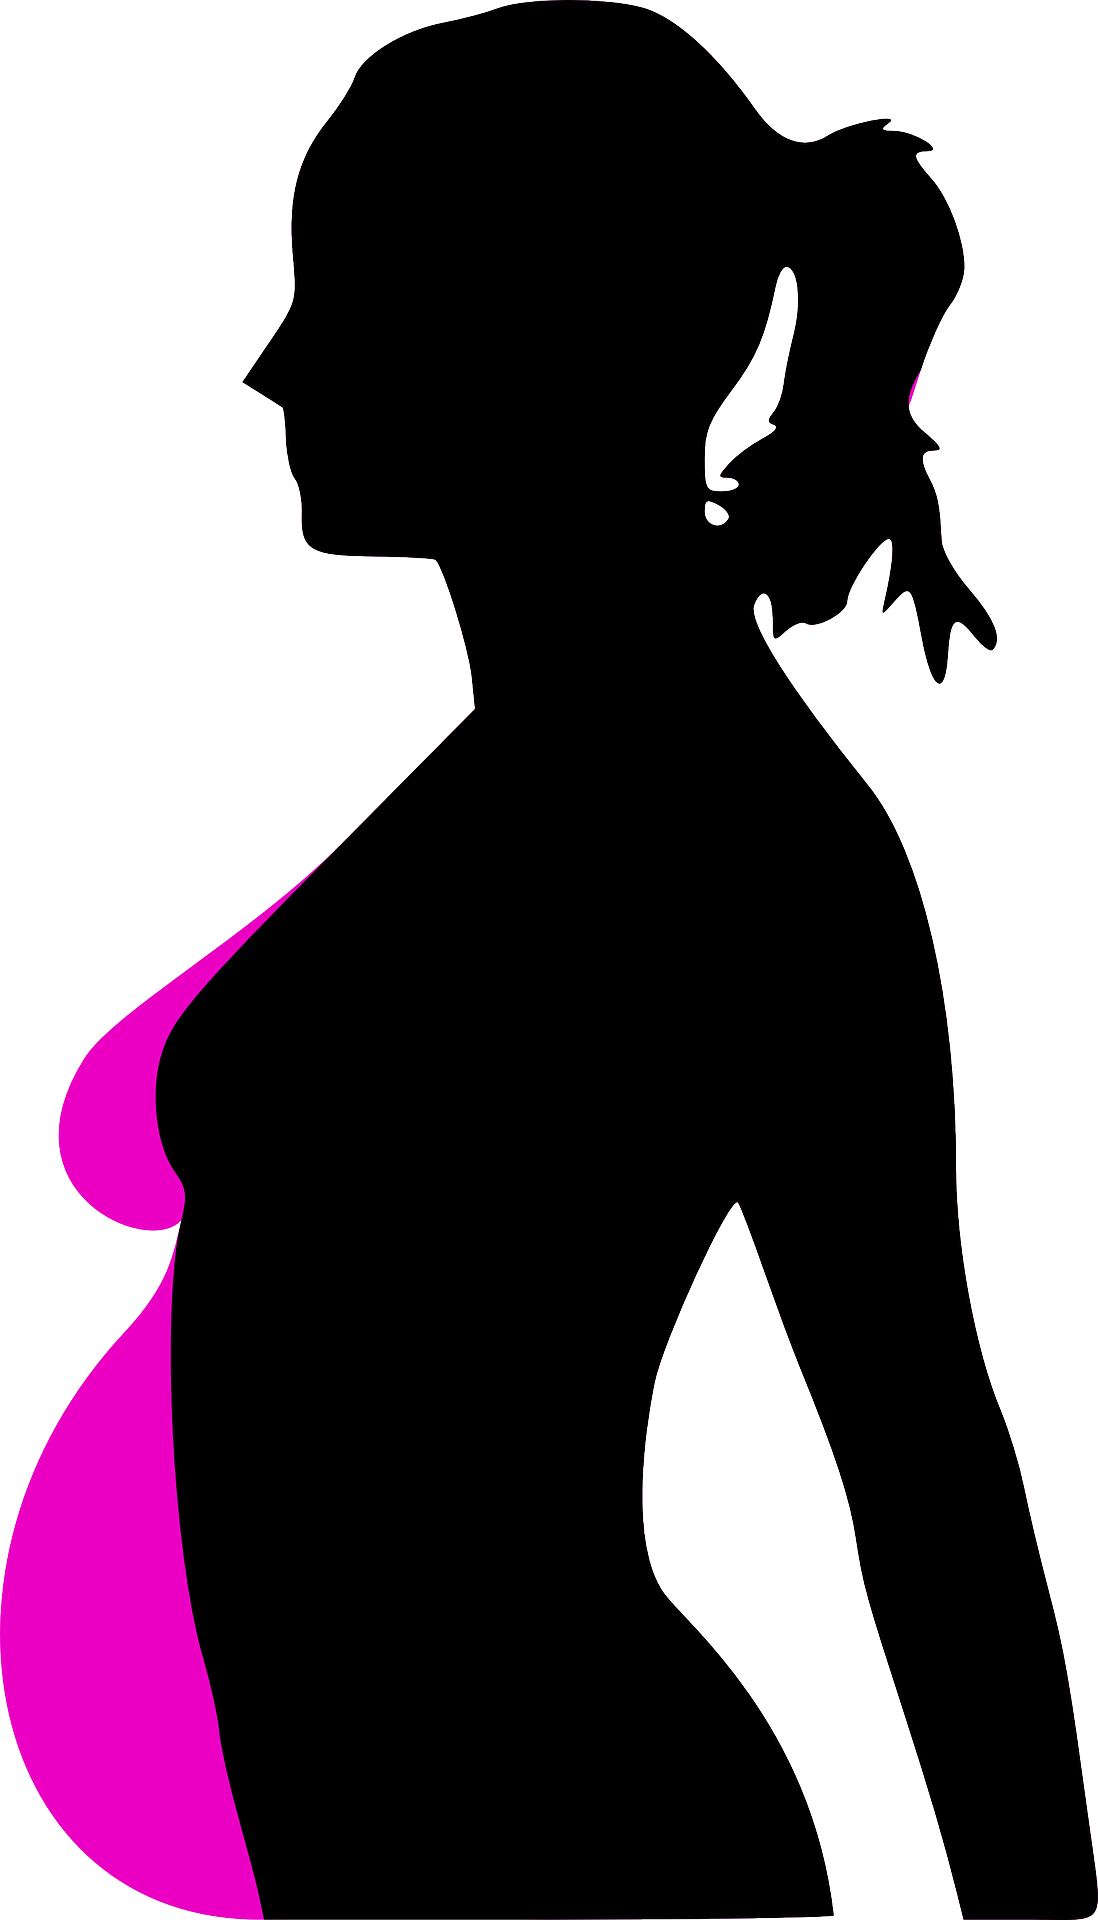 banner royalty free download Vector costume pregnant. Rbv solutions s public